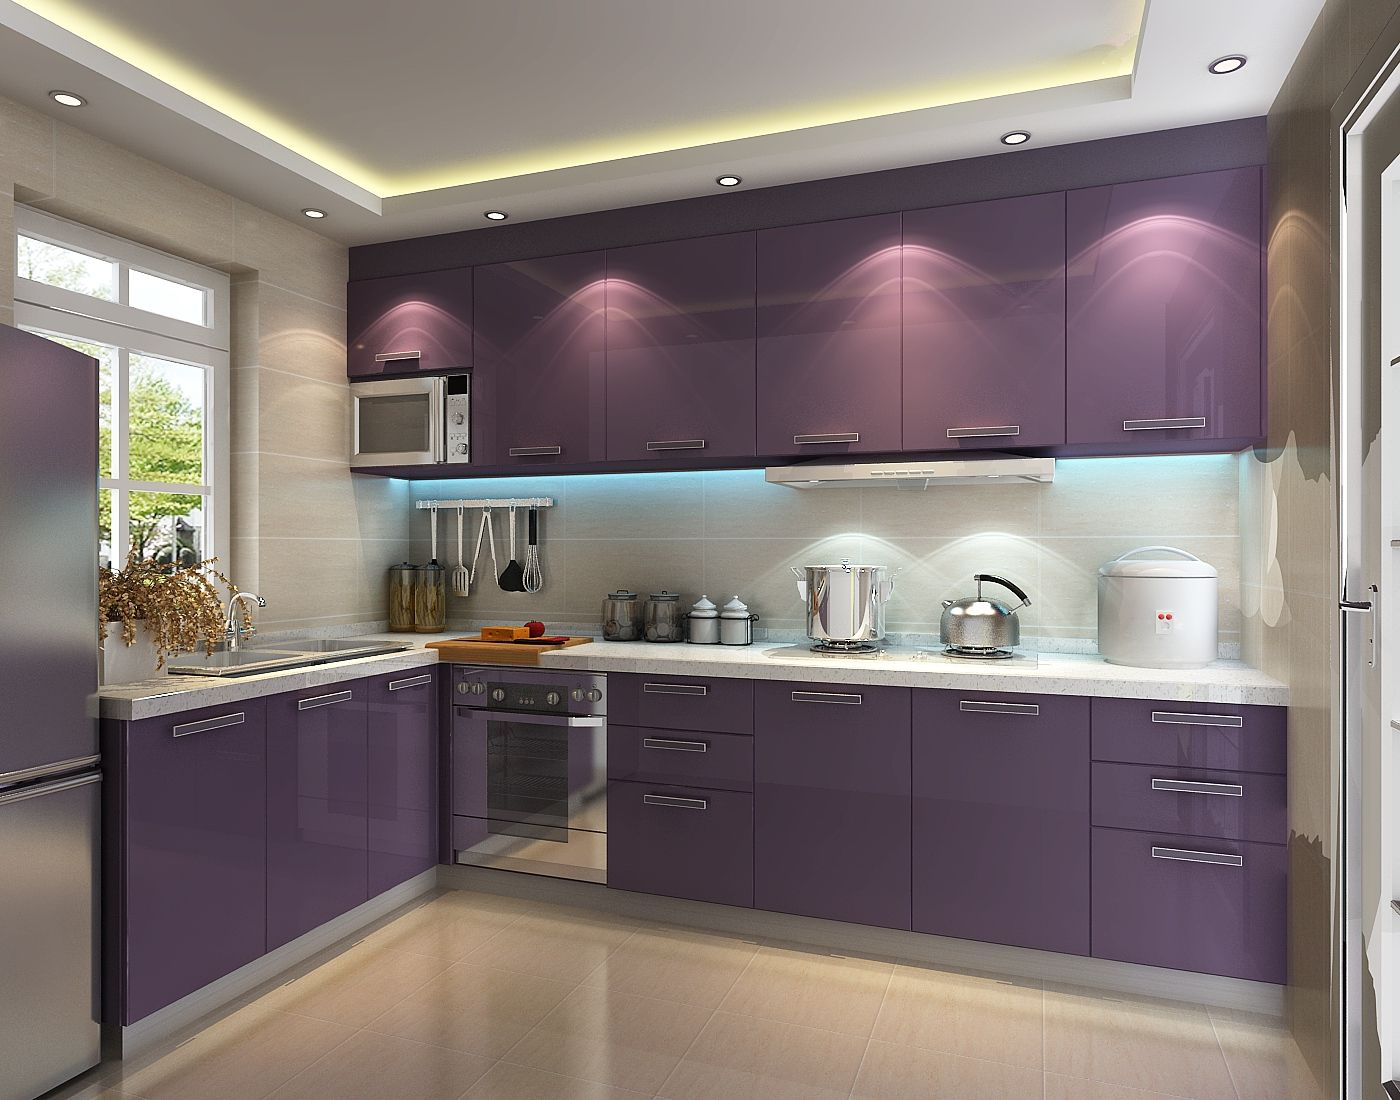 Purple east High Gloss PVC kitchen cabinet_VC Cucine China .